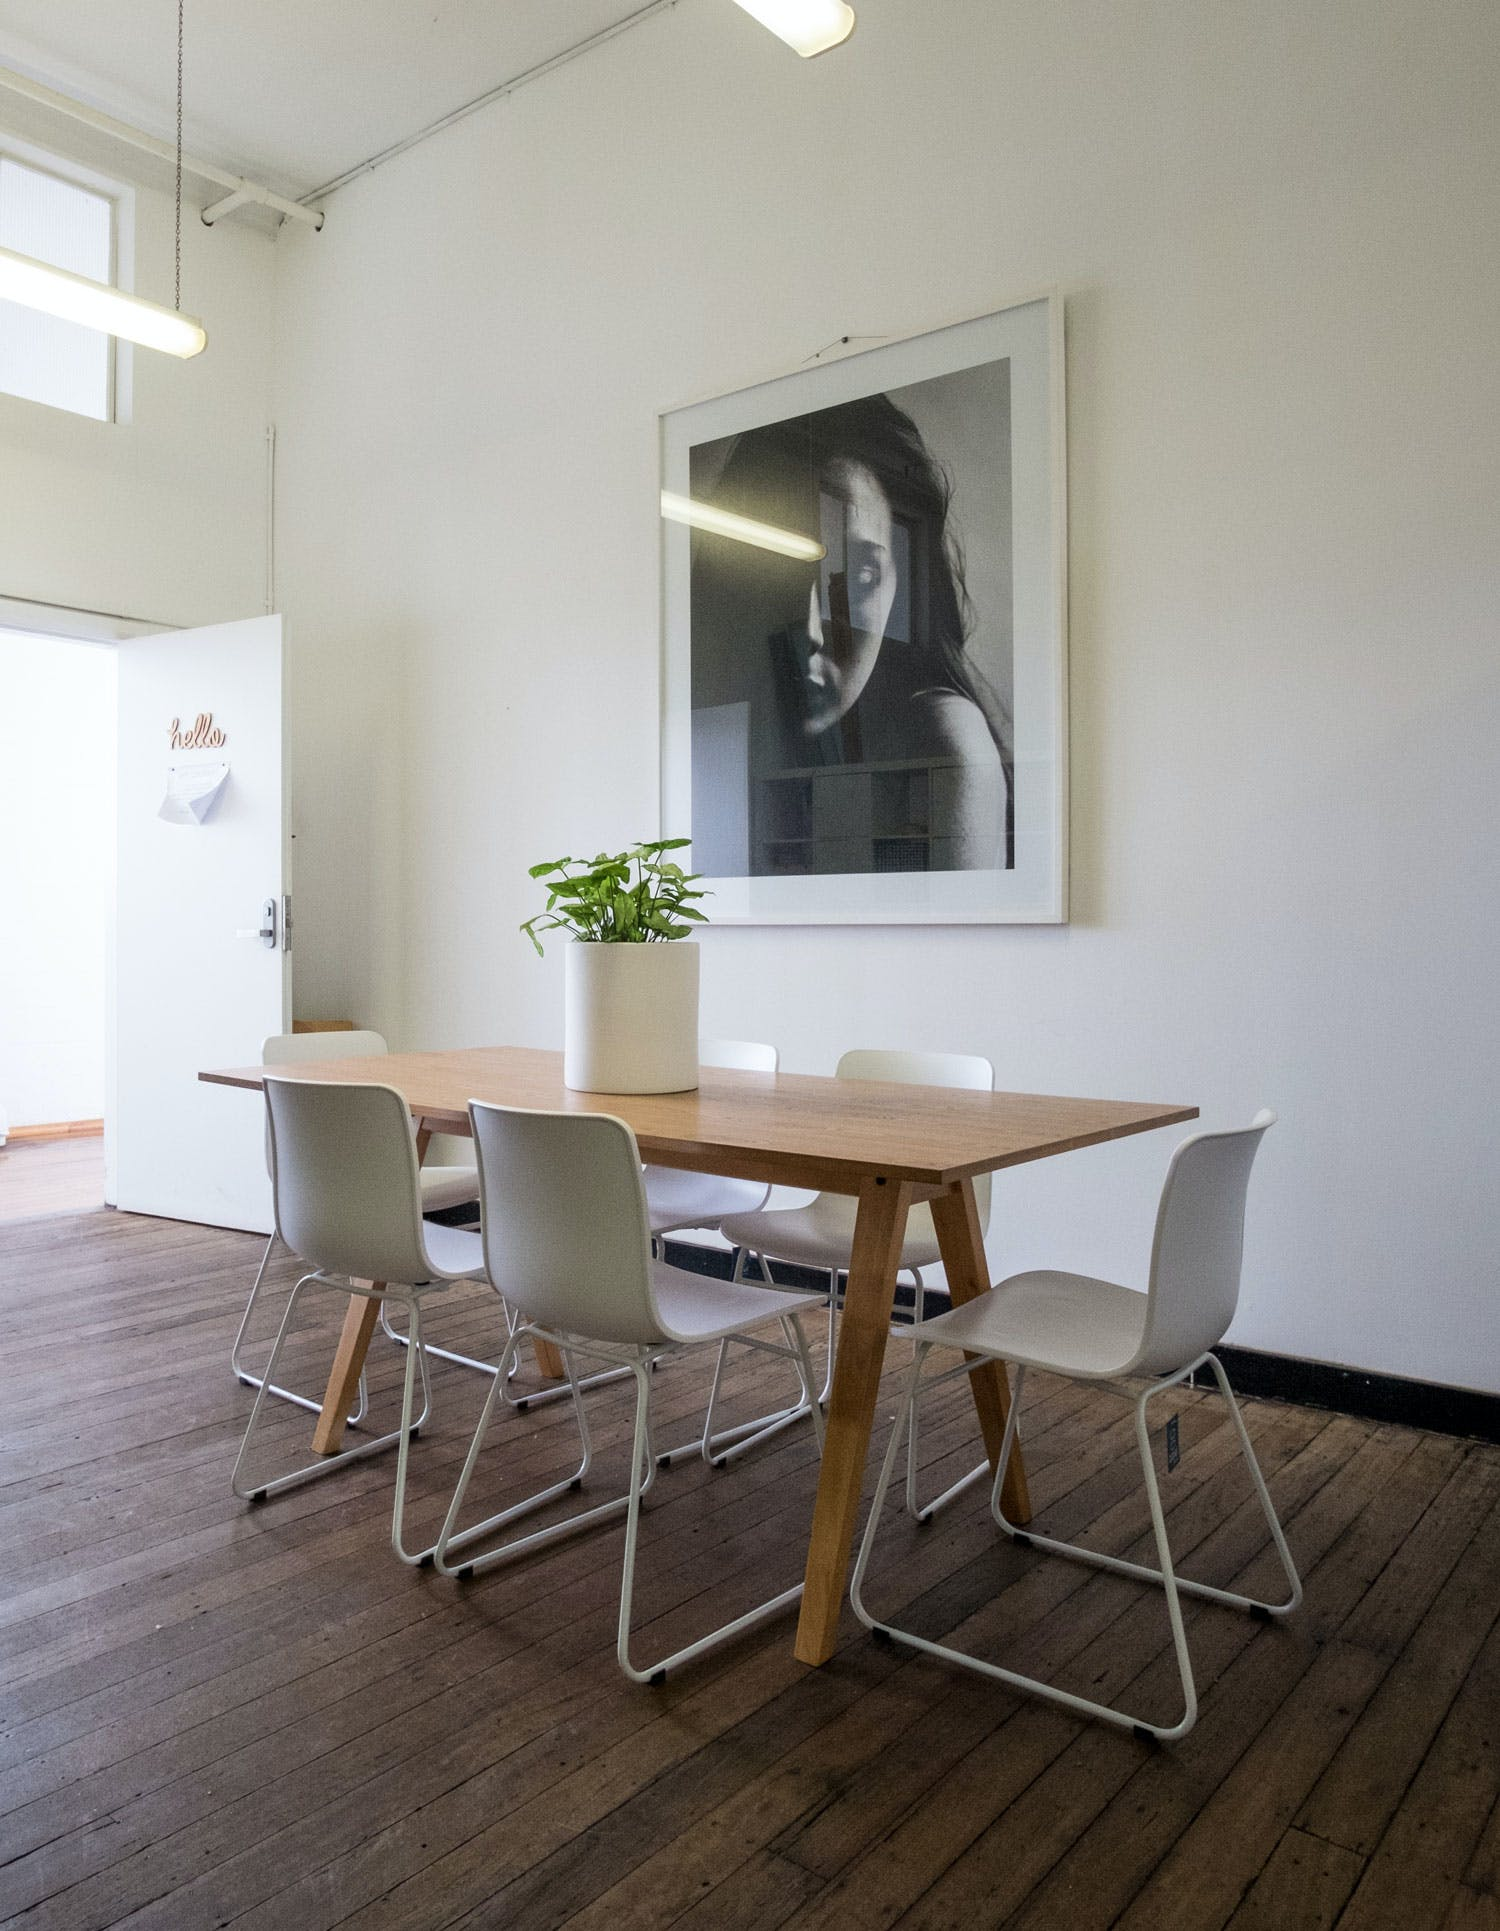 Studio 56, coworking at Marlborough House, image 1